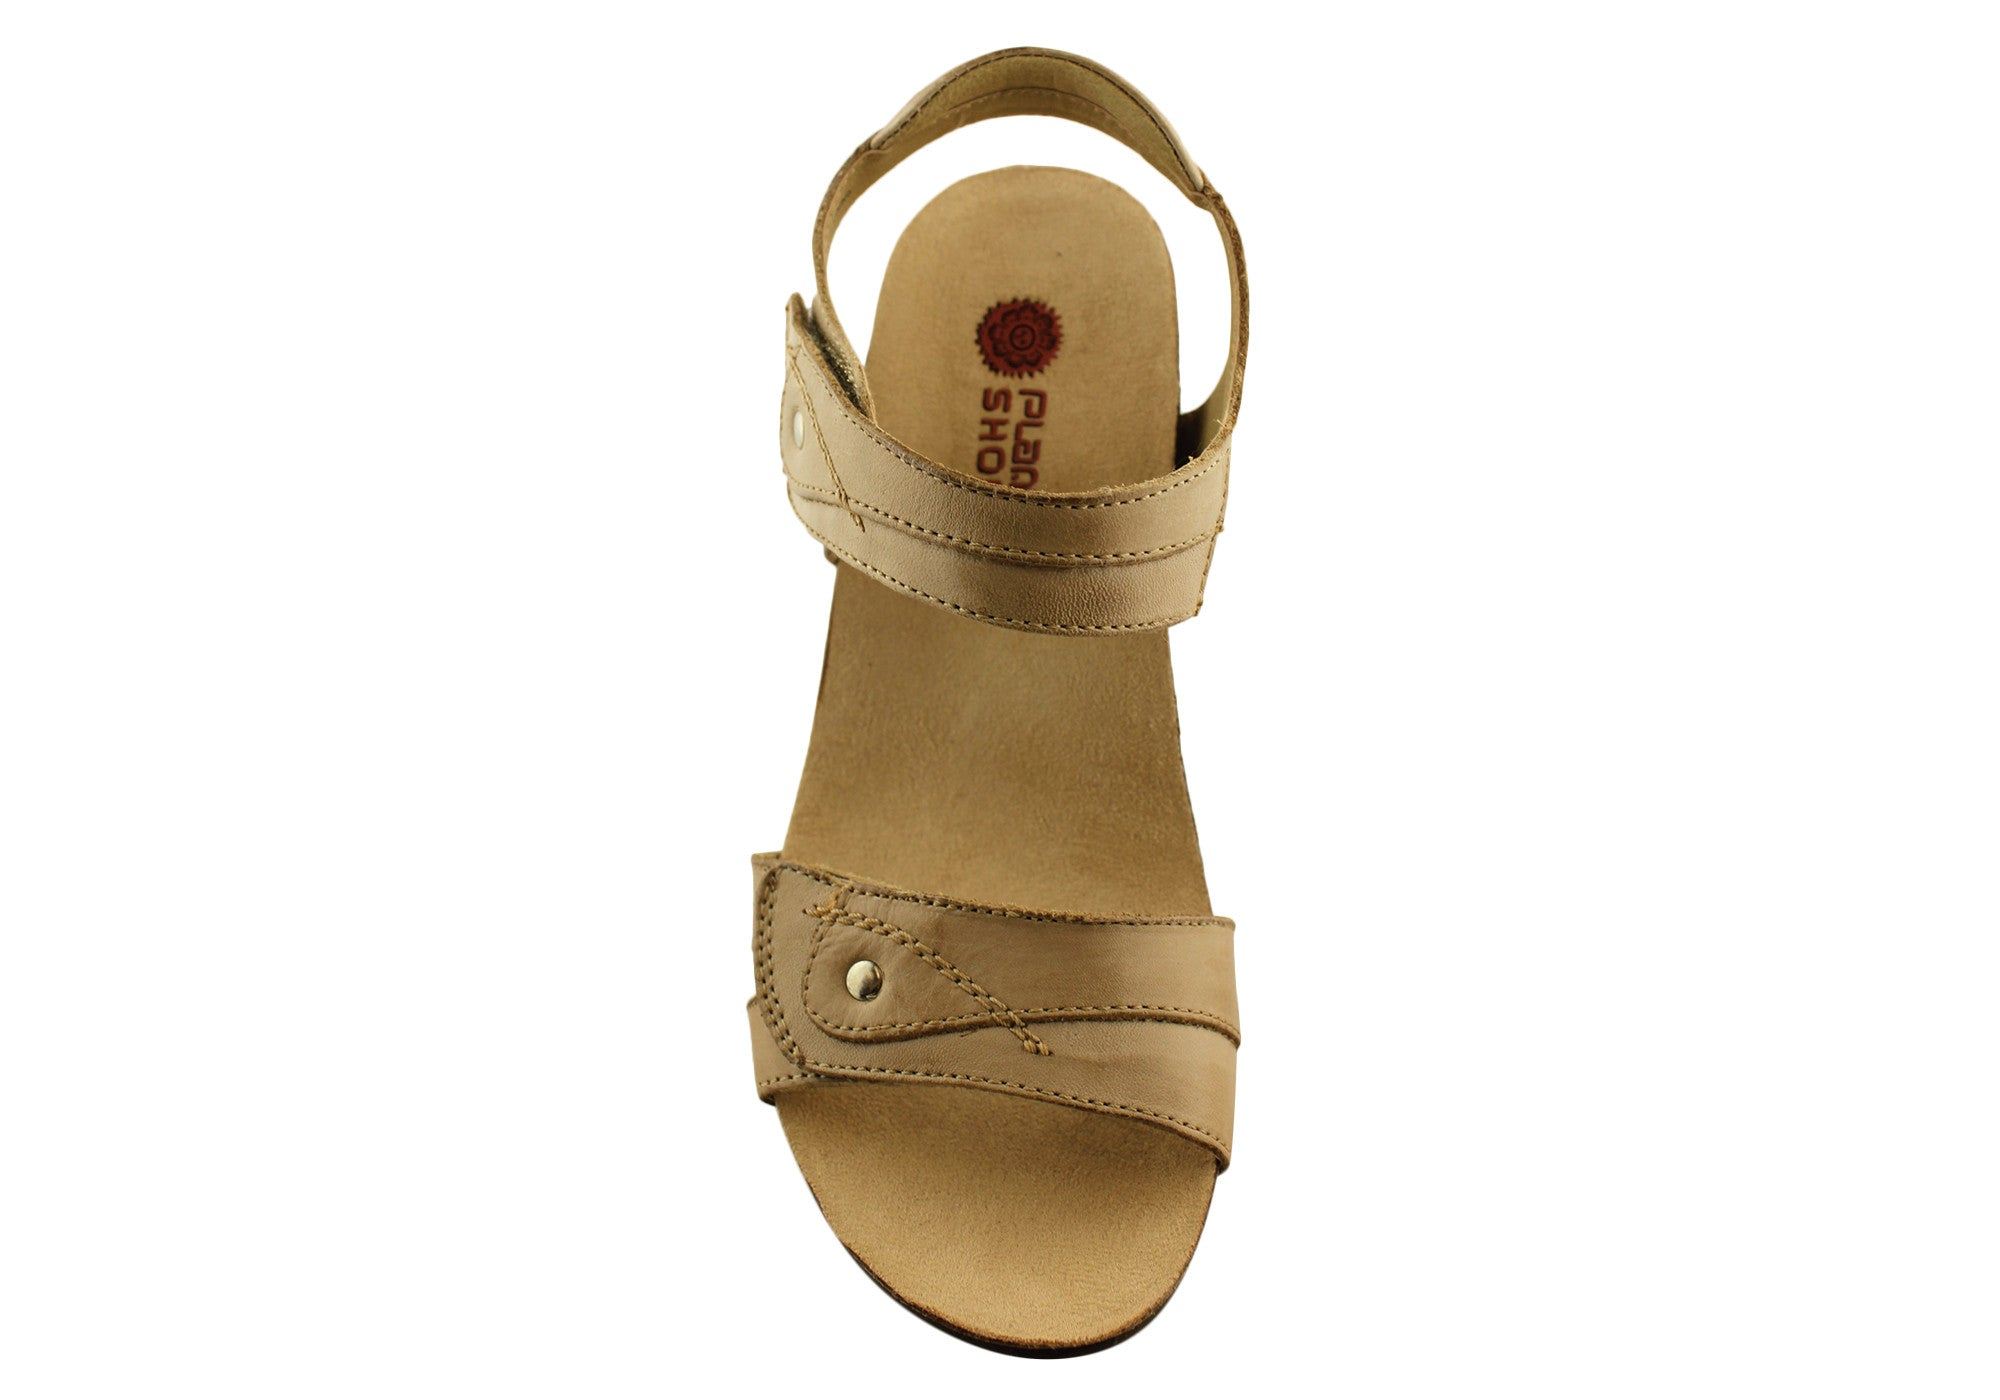 Planet Shoes Parle Womens Leather Comfort Wedge Sandals